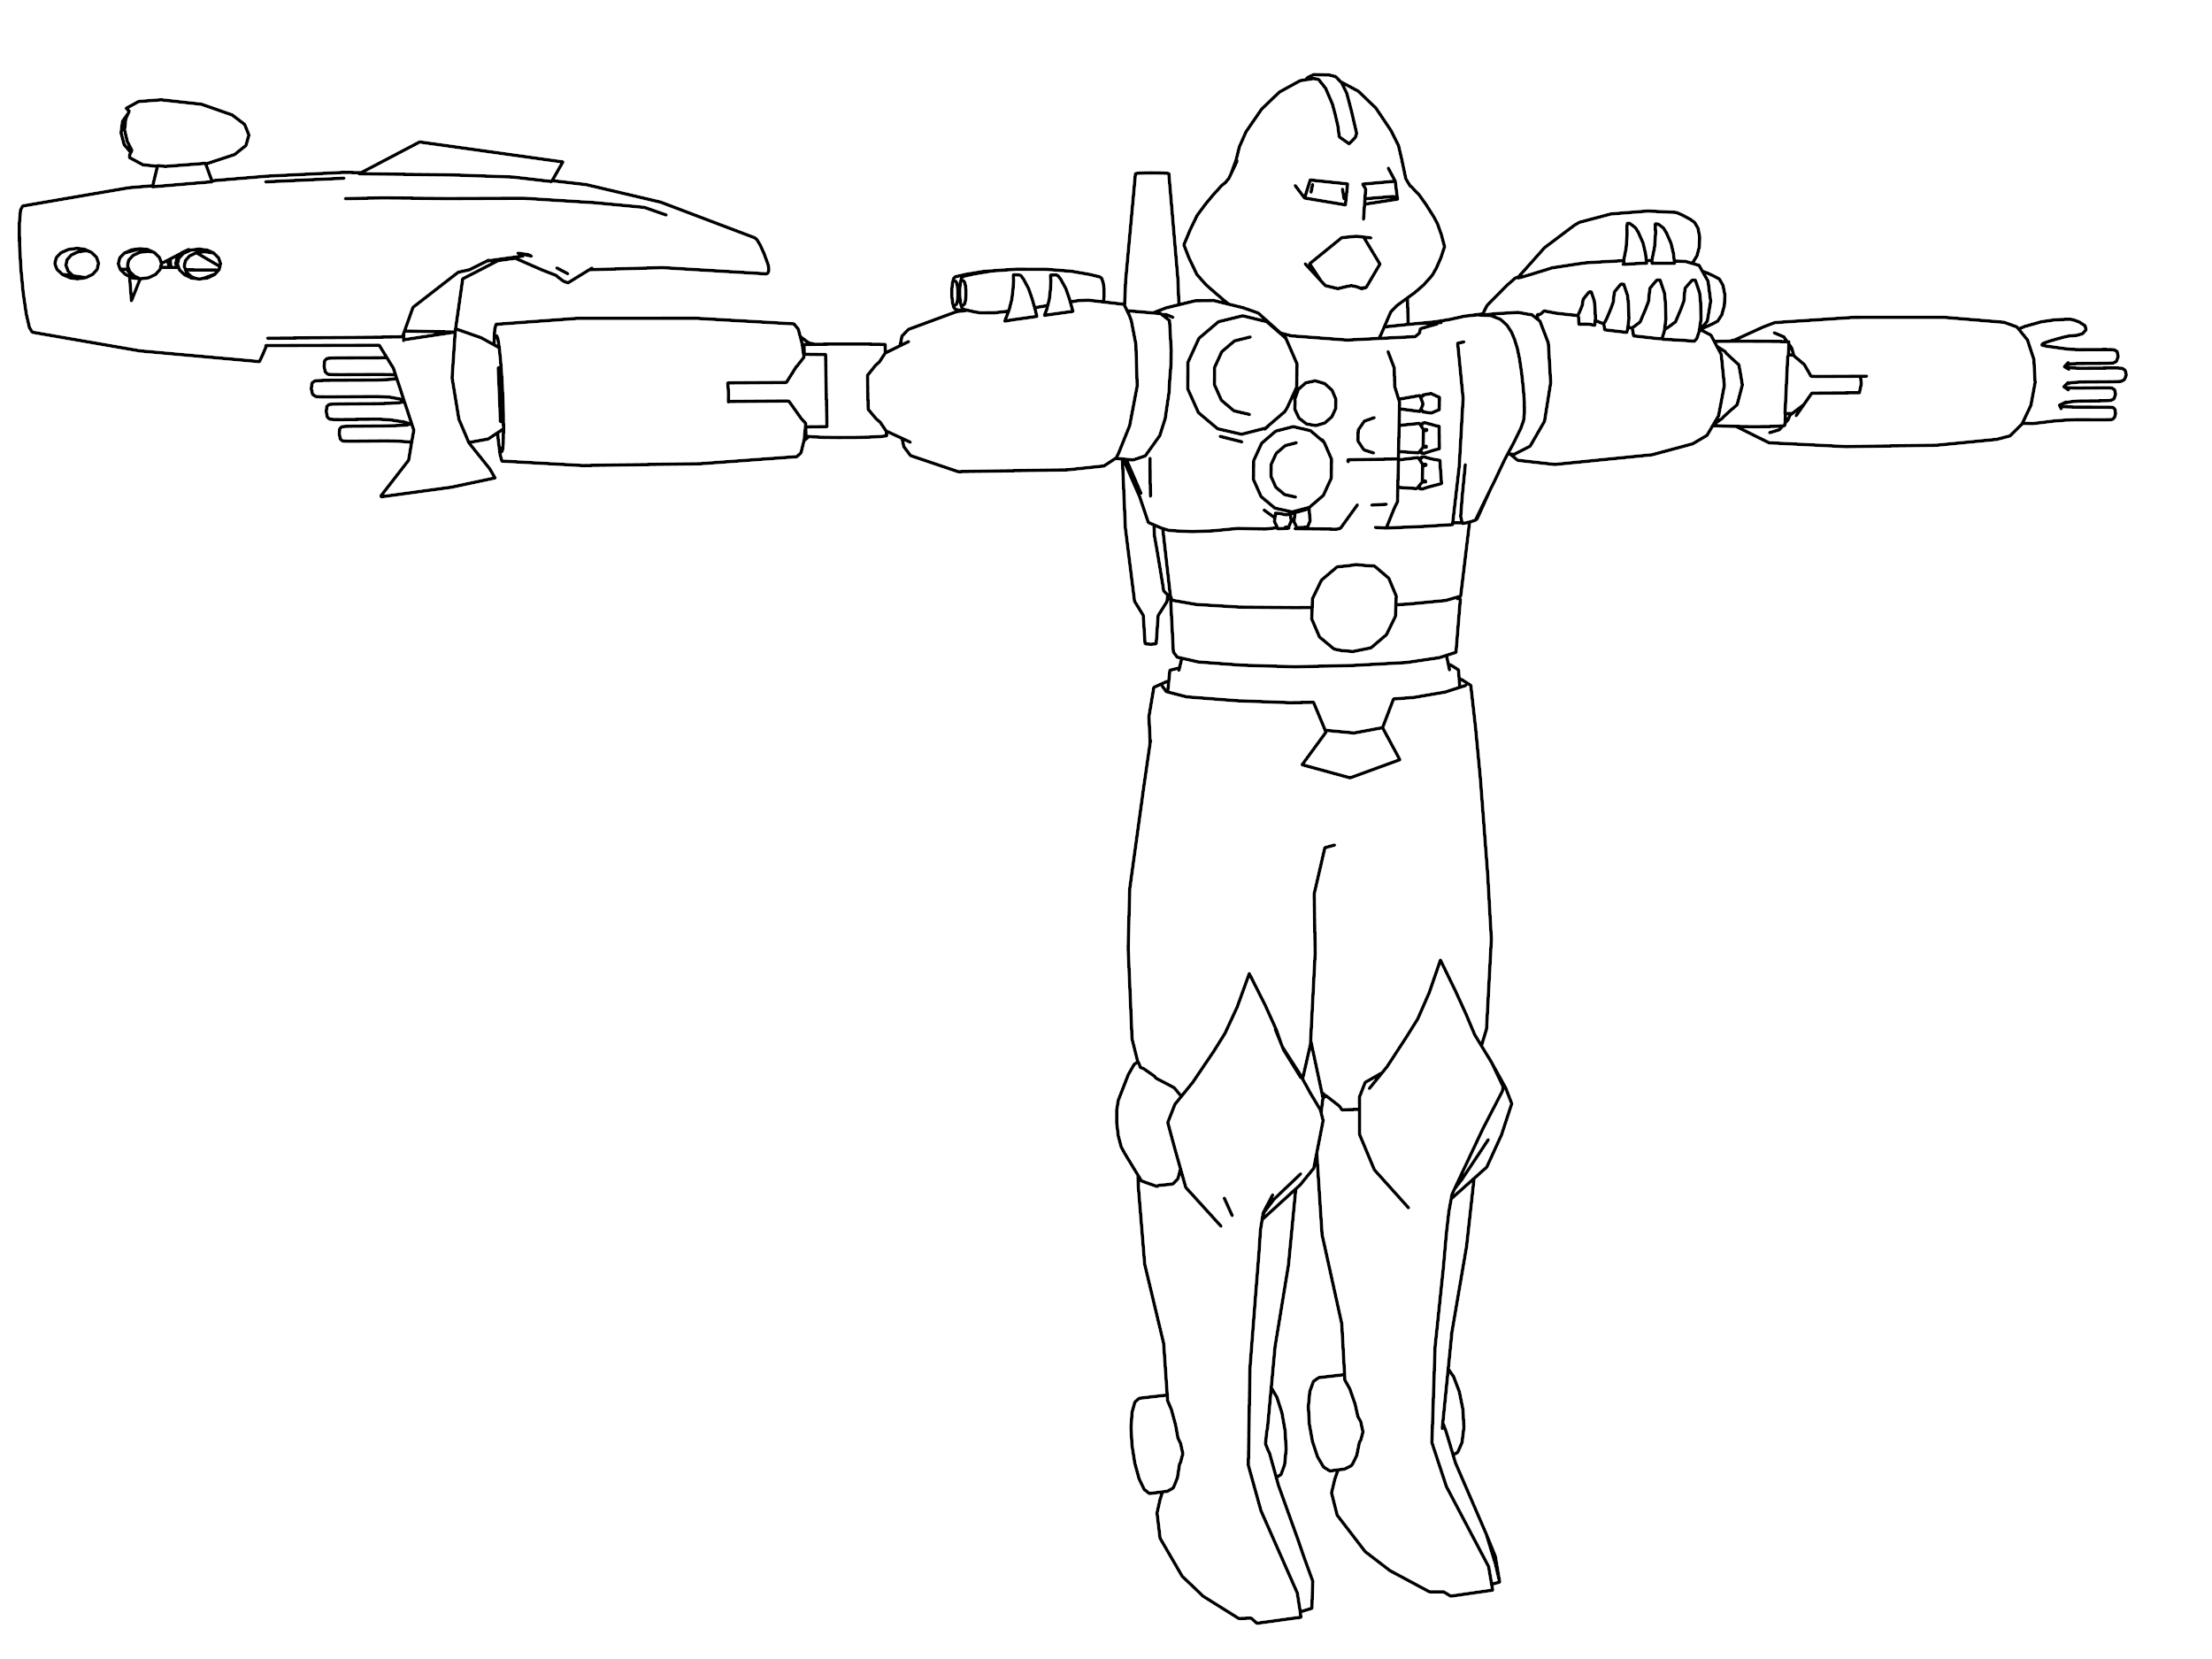 Turrican Robot Character Coloring Page